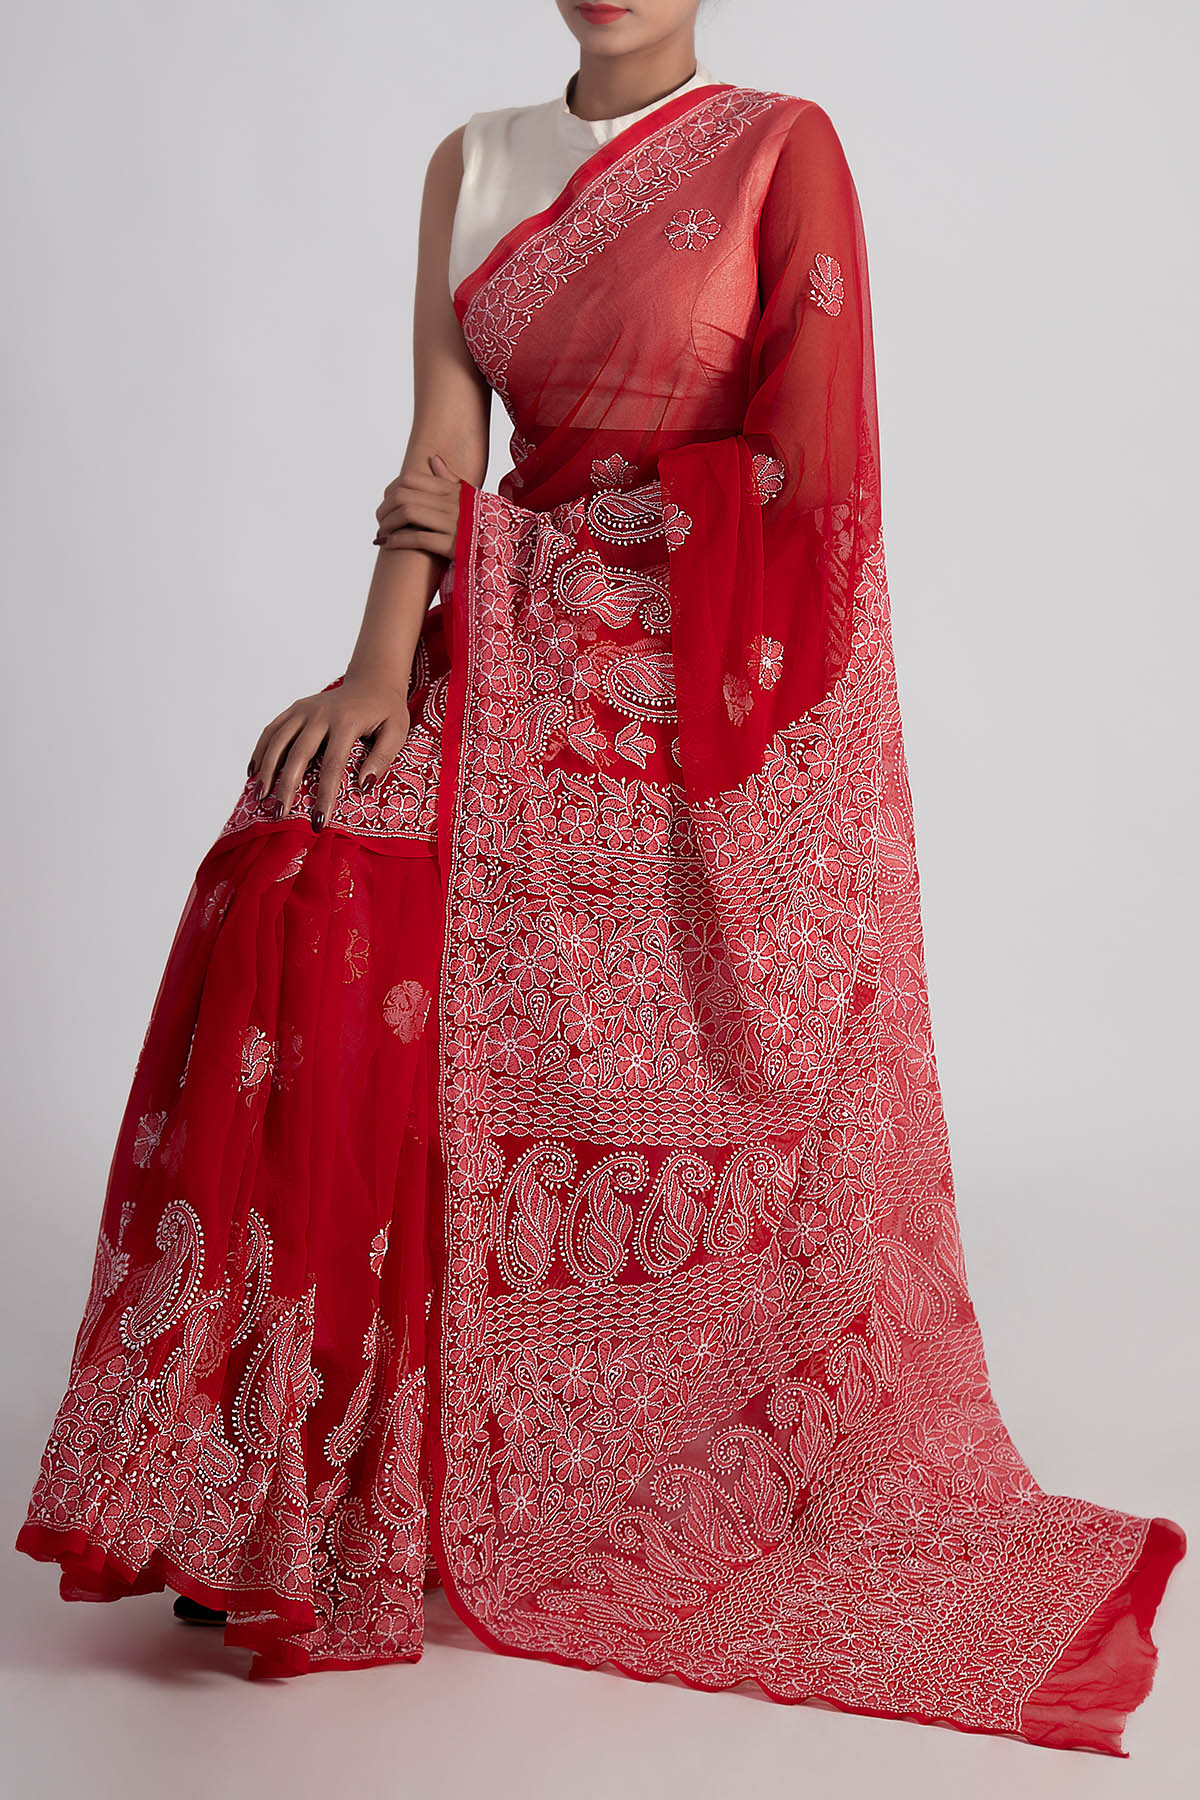 Red Colour Hand Embroidered Designer Lucknowi Chikankari Saree (With Blouse - Georgette) GA250618